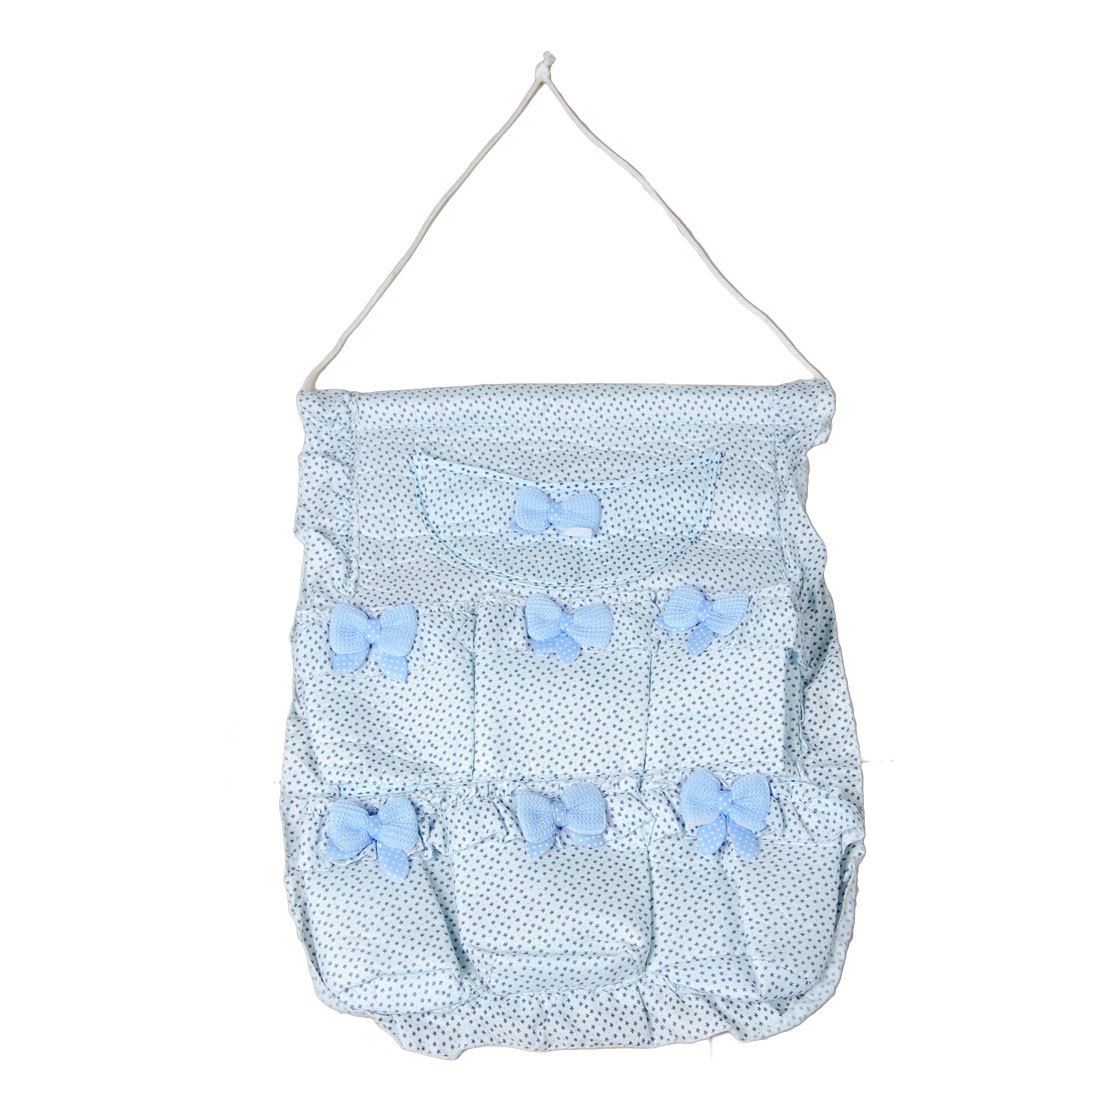 Bowknot Decor Sponge 7 Pockets Organizer Hanging Storage Bag Blue